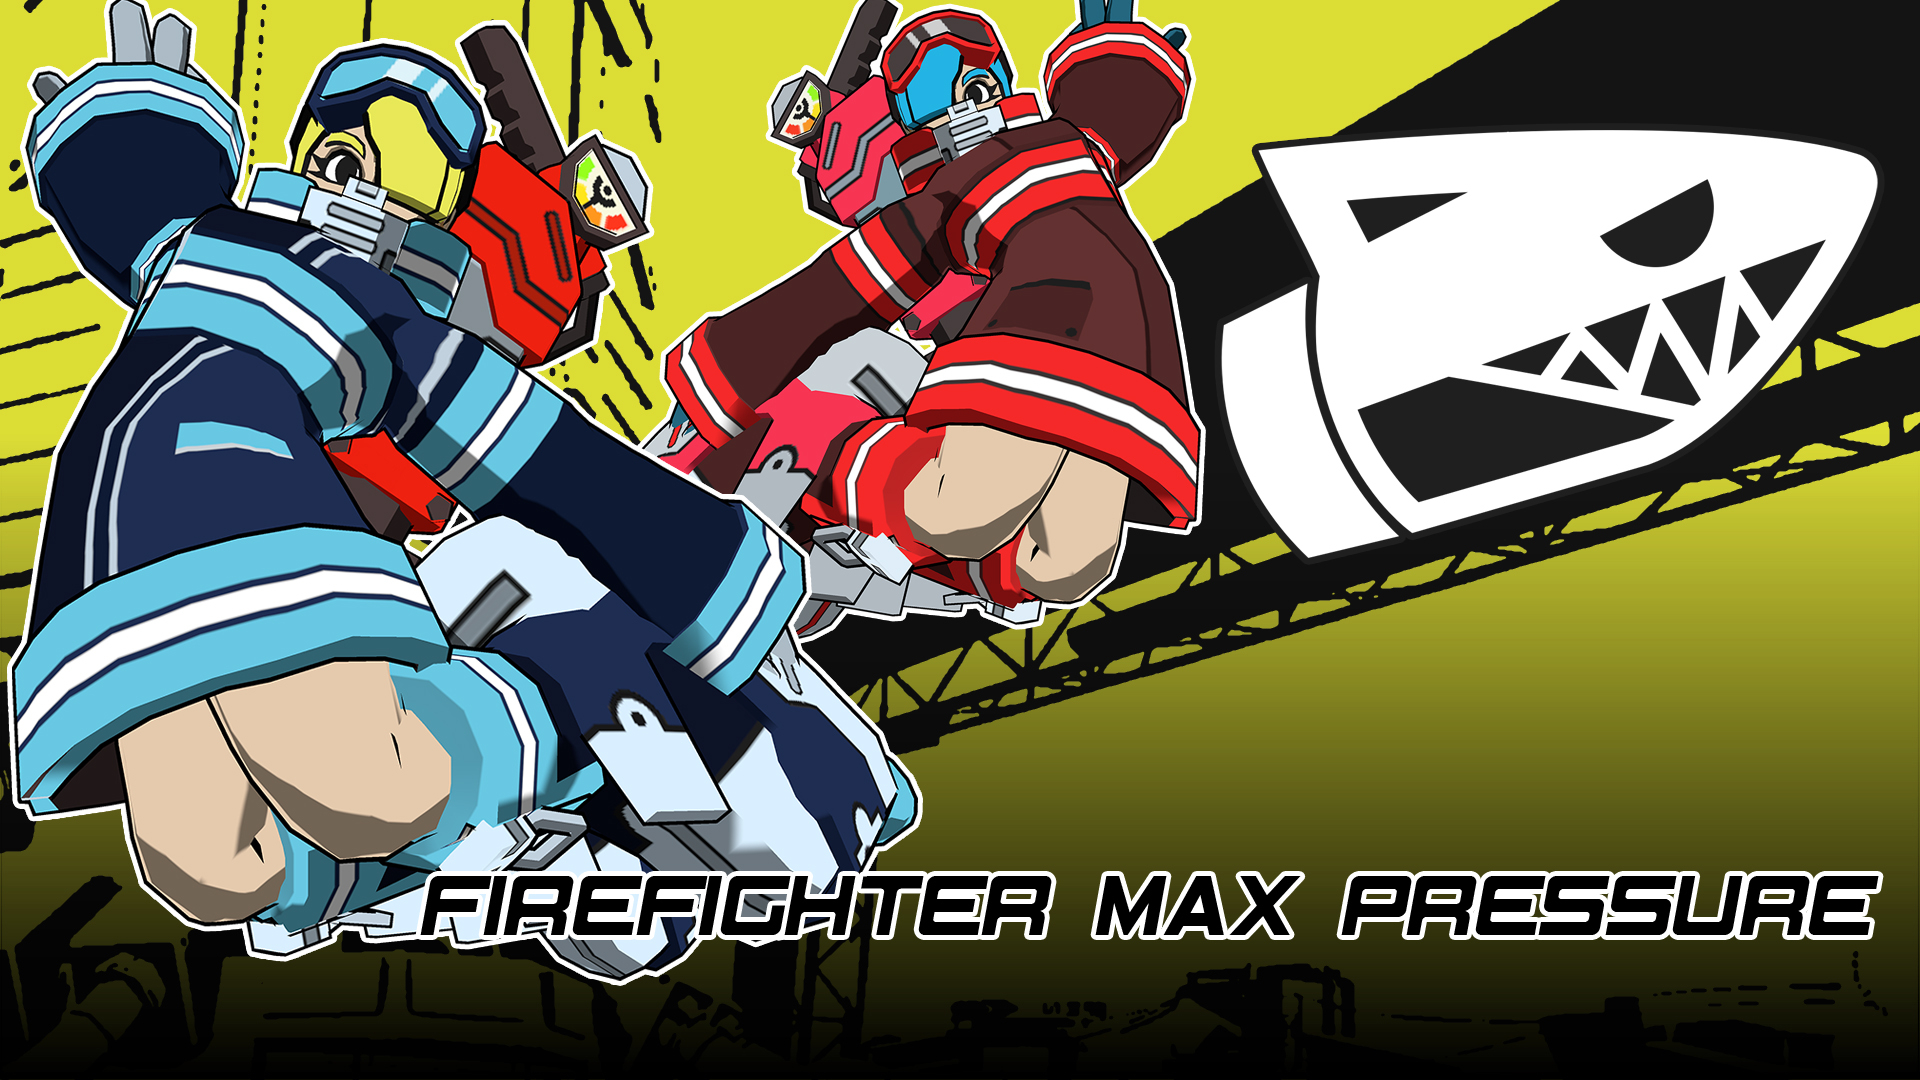 Firefighter Max Pressure outfit for Jet